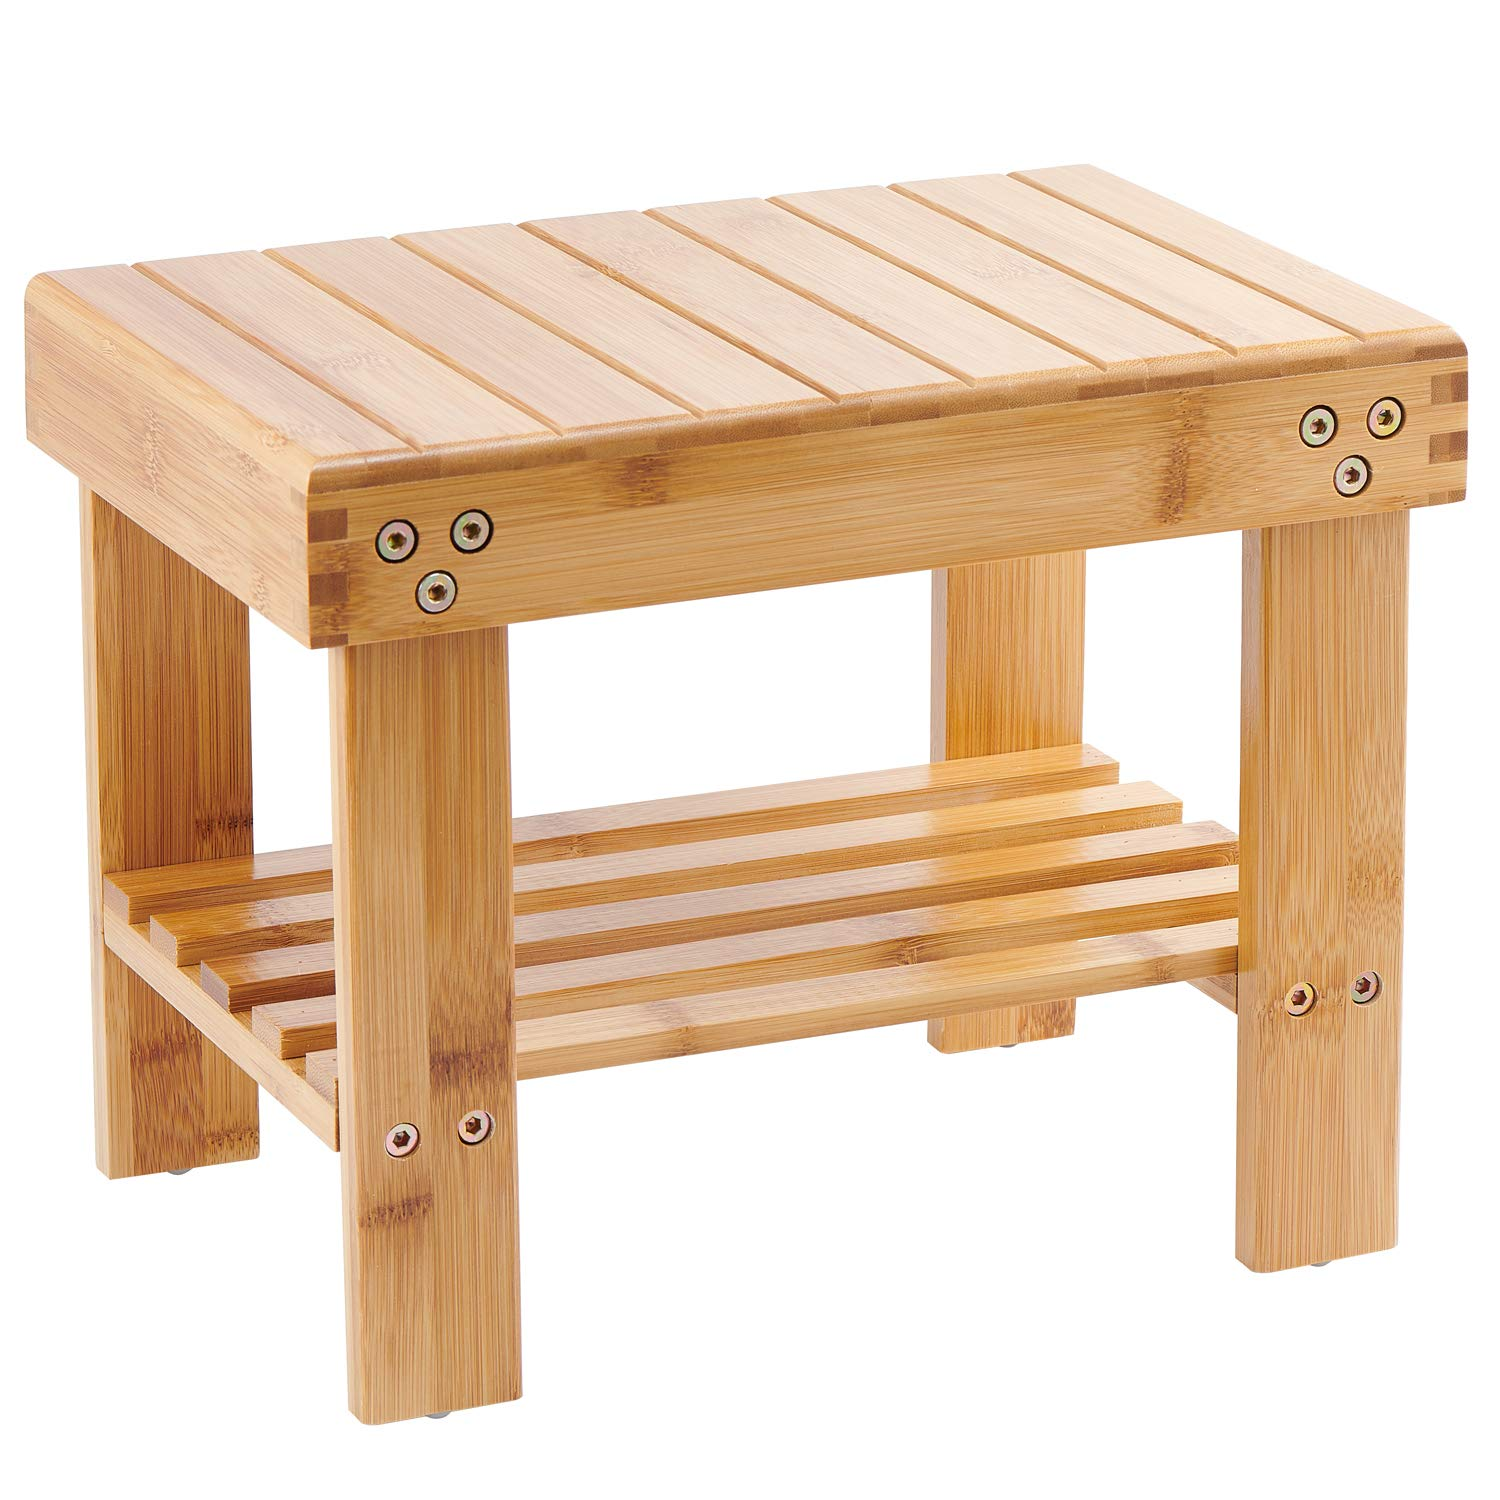 Bamboo Small Seat Stool for Kids, Foot Rest Shaving Stool,Storage Shelf, Durable Lightweight and Anti Slip